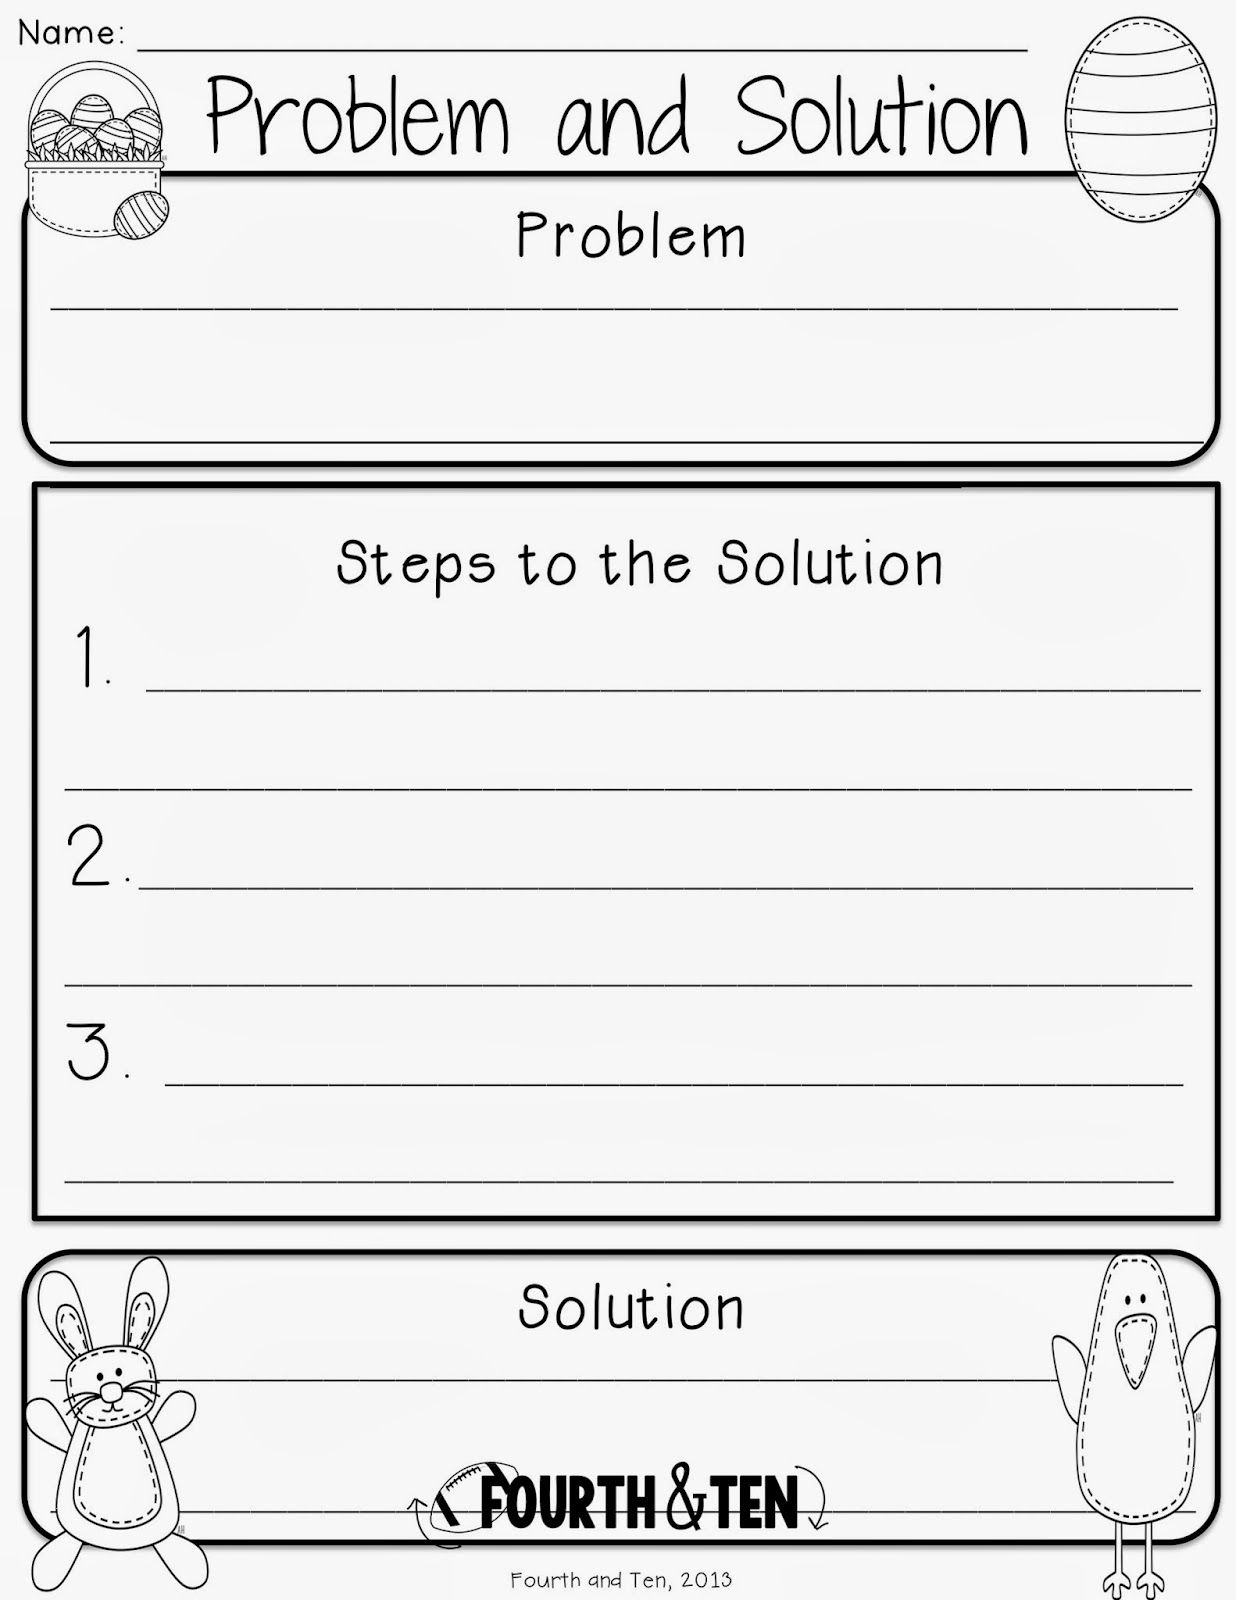 hight resolution of Easter Graphic Organizers - Reading/Writing - Problem Solution   Reading  worksheets